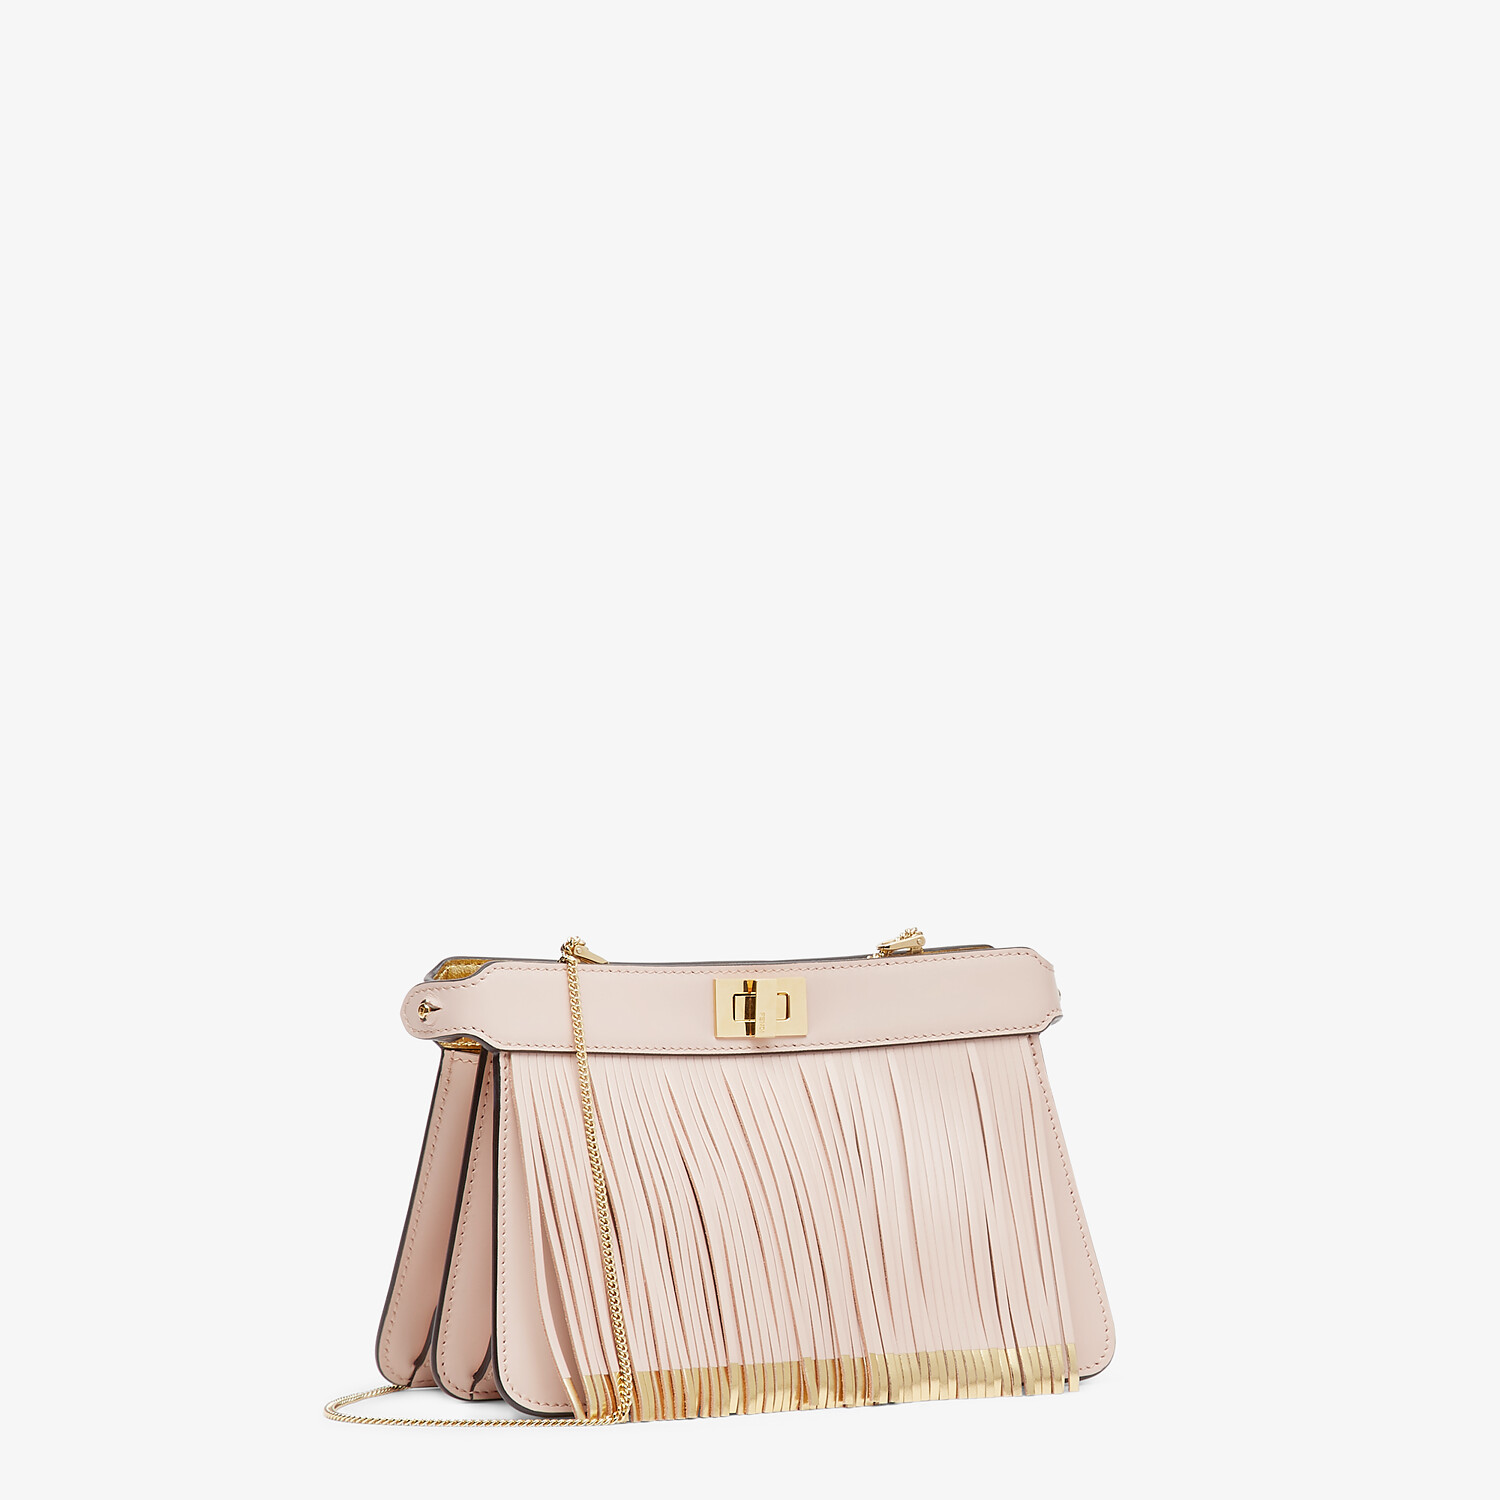 FENDI PEEKABOO I SEE U POCHETTE - Pink leather bag with fringes - view 3 detail